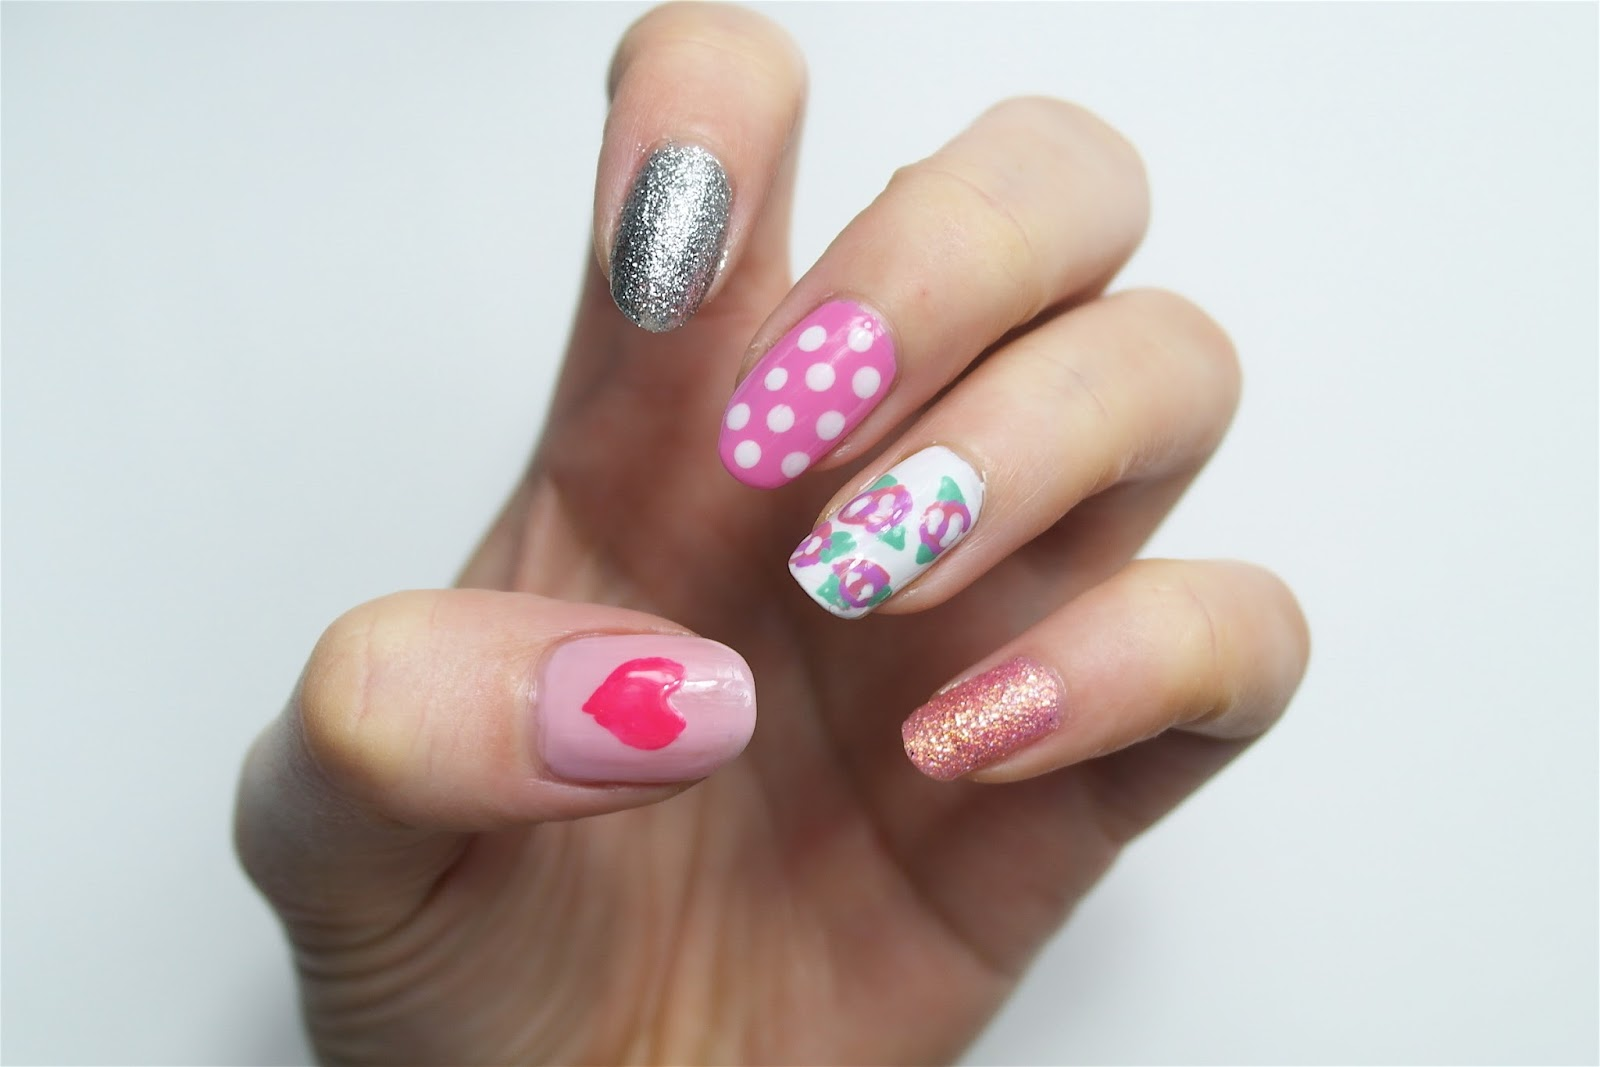 rose, heart and polka dot nails